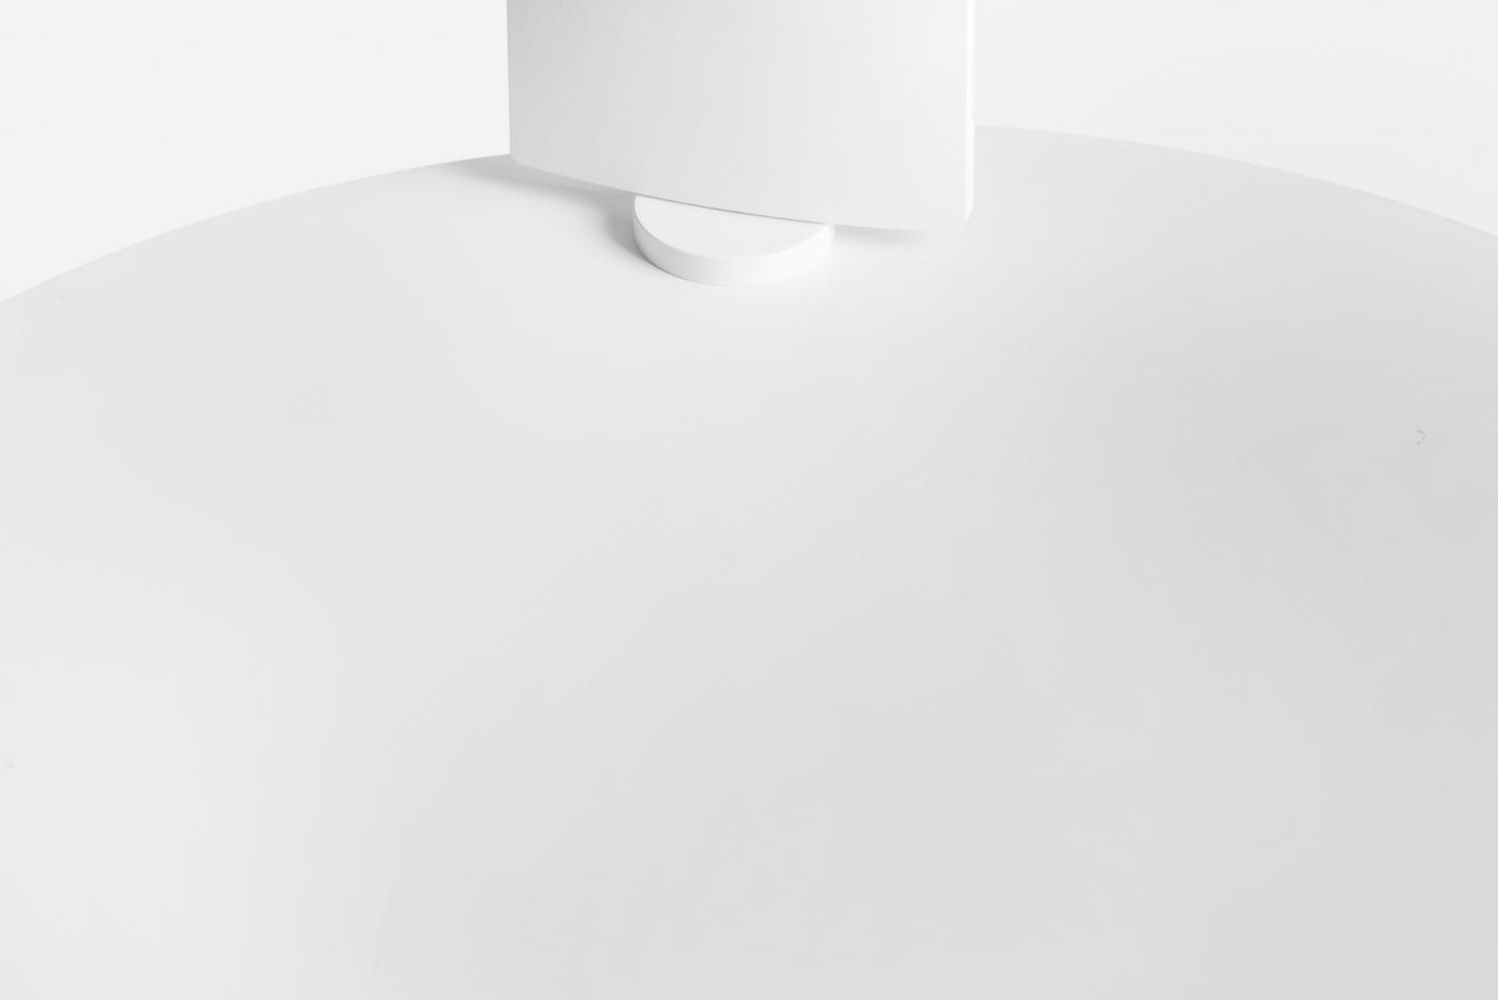 Piazza is a magnetic wall lamp, designed to move freely on the surface of a metal board according to the user's needs.